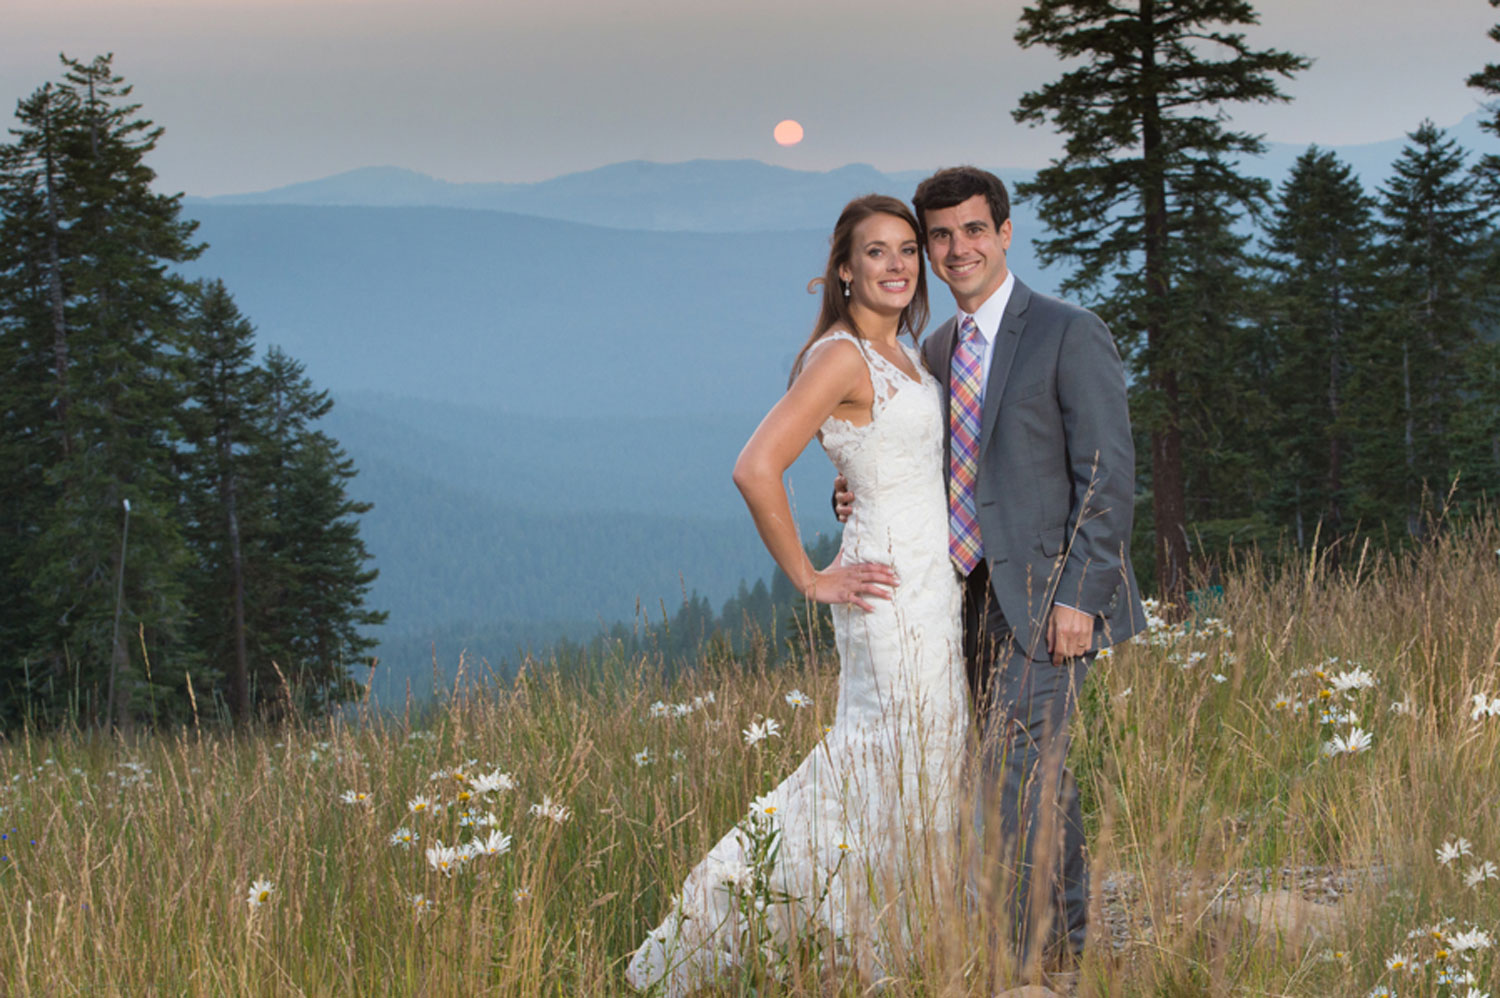 wedding couple Northstar California mountain views at sunset